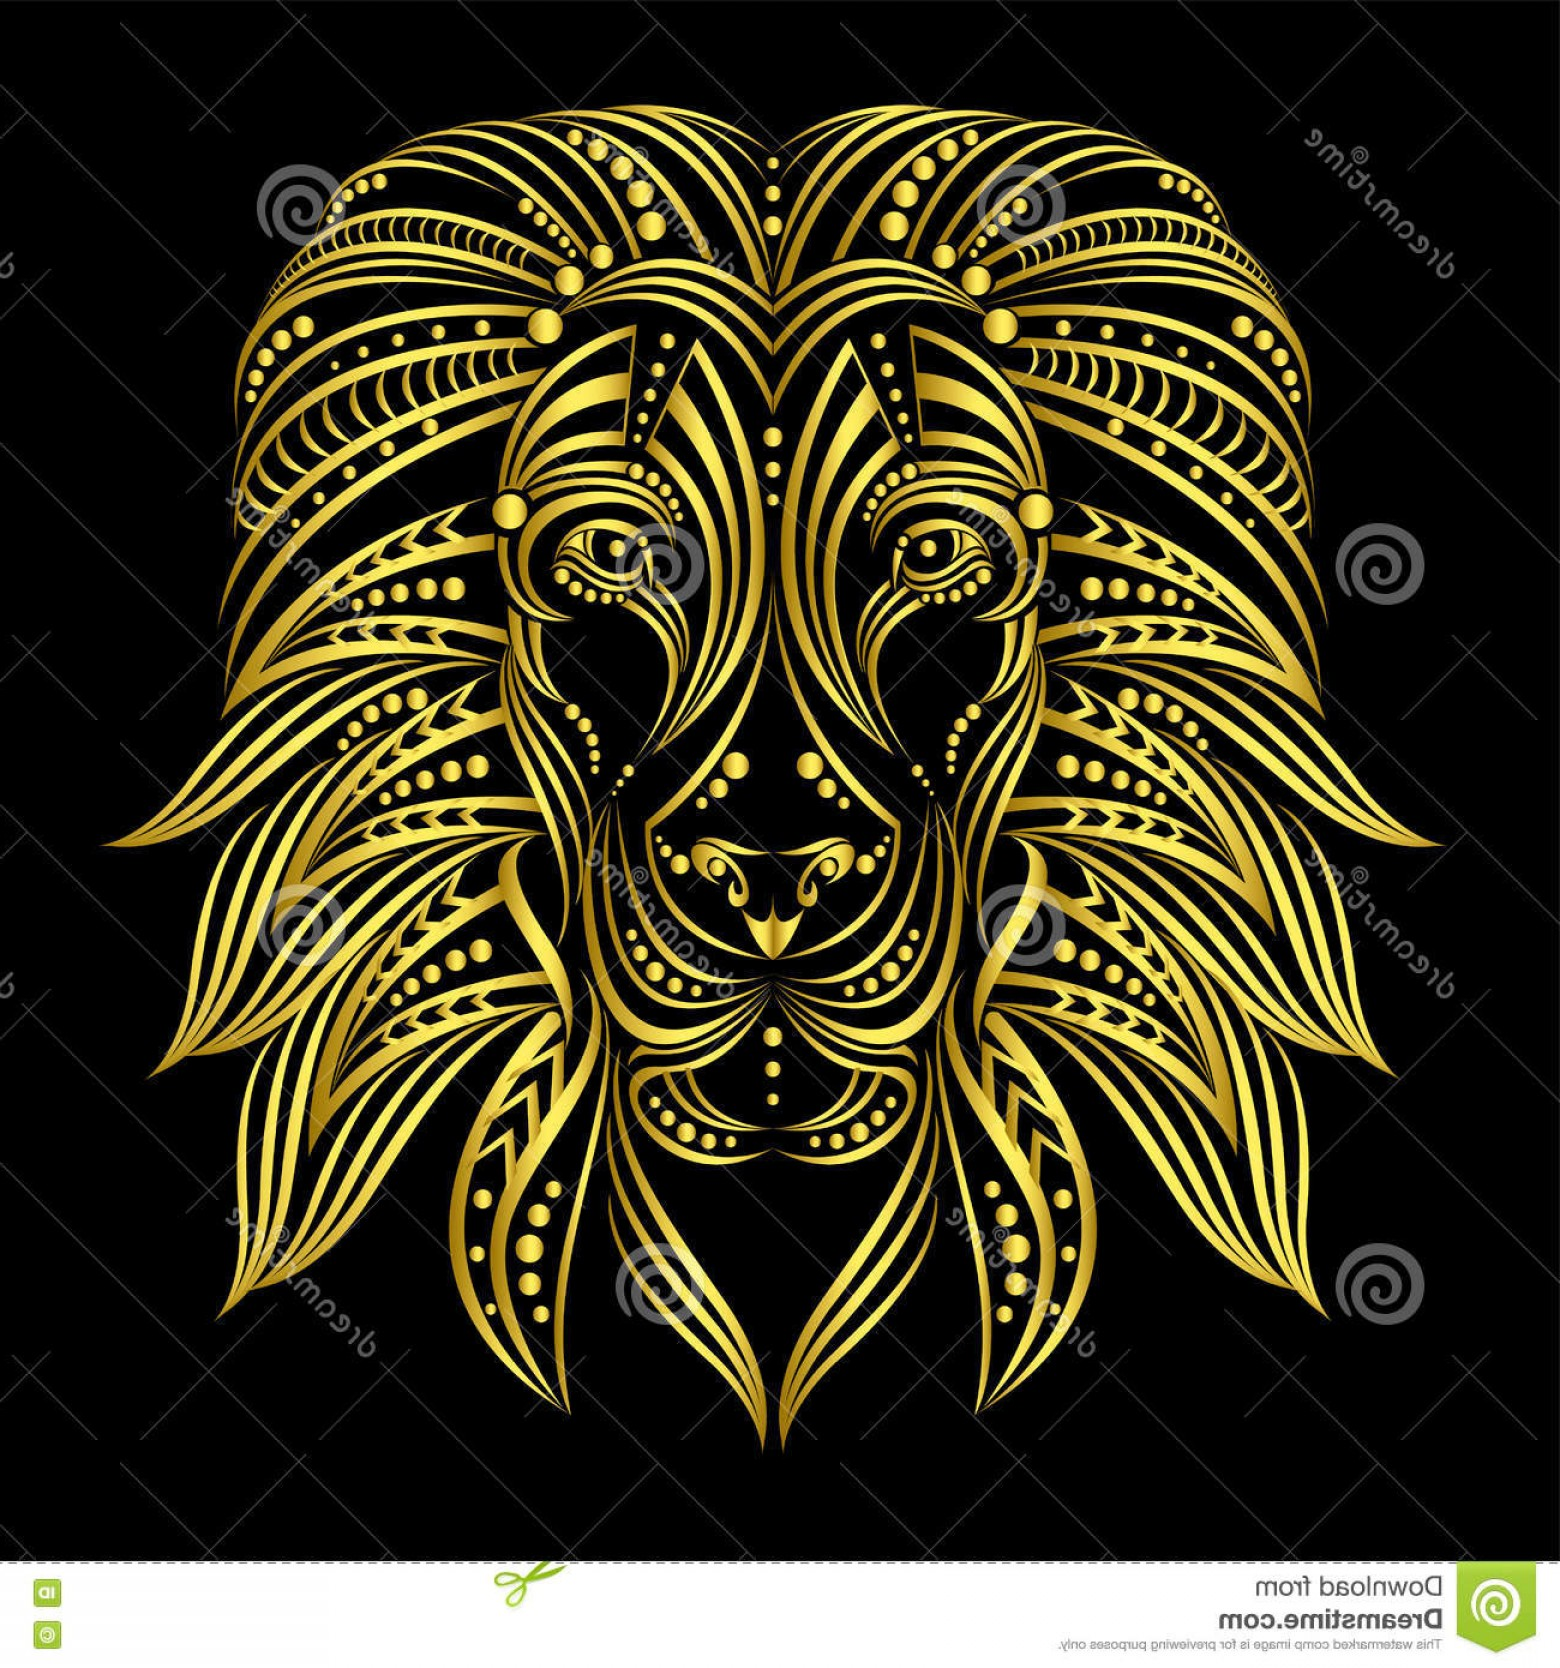 Blue Tigers Lincoln Logo Vector Image: Stock Illustration Lion Painted Ethnic Style Indian African Style Sketch Tattoo Print T Shirt Cover Poster Postcard Clothing Image